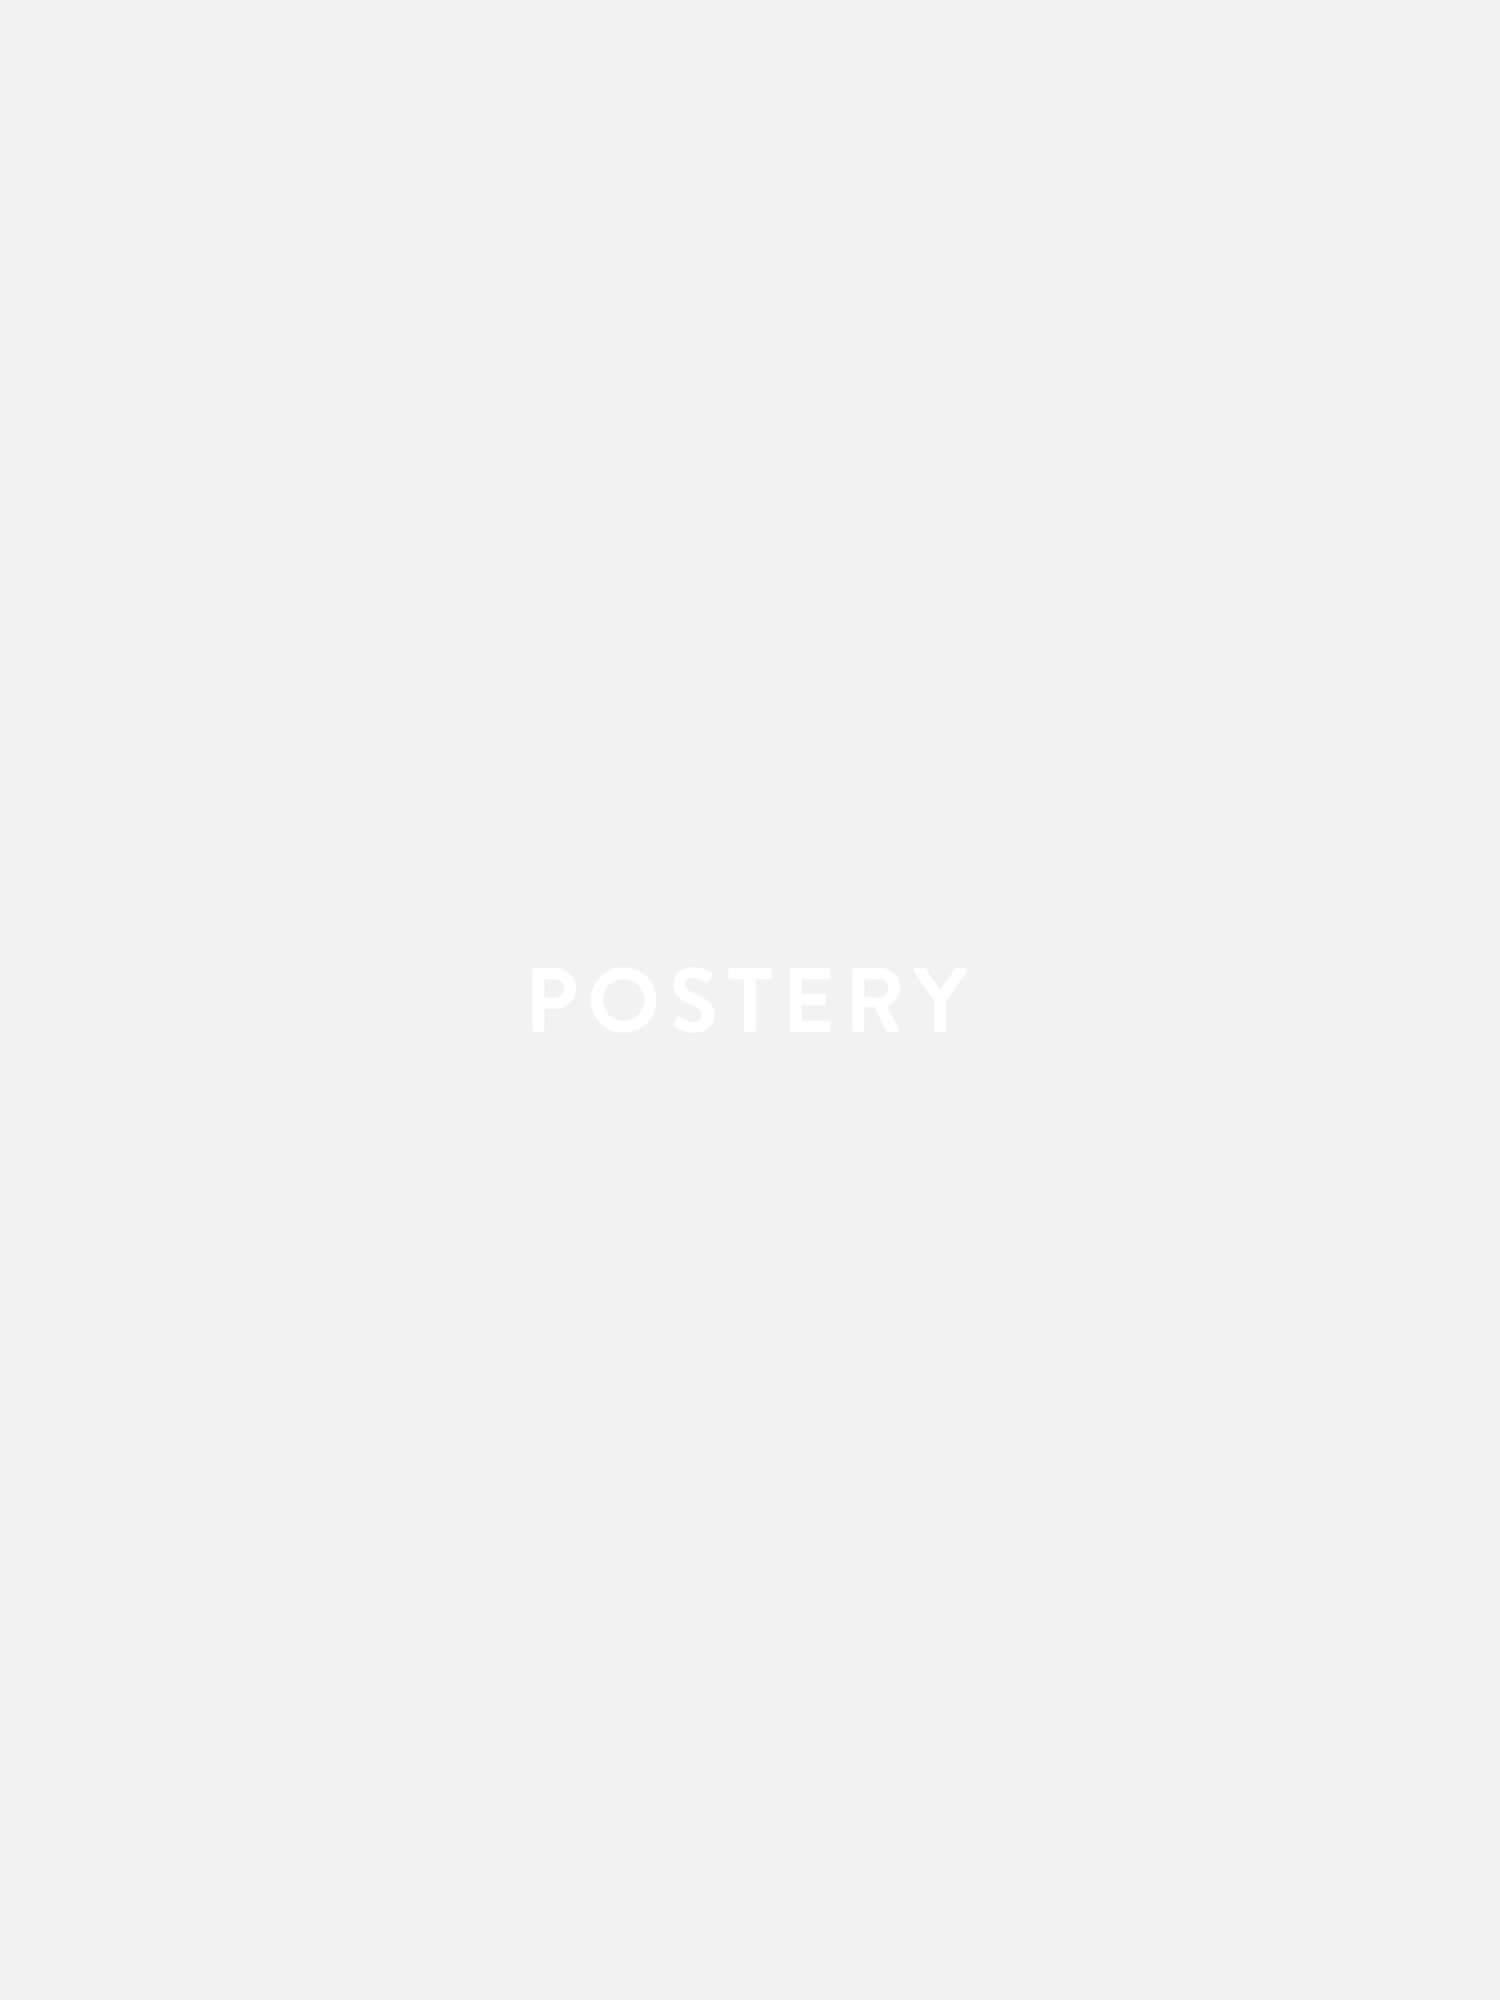 One Who Understands by Paul Klee Poster